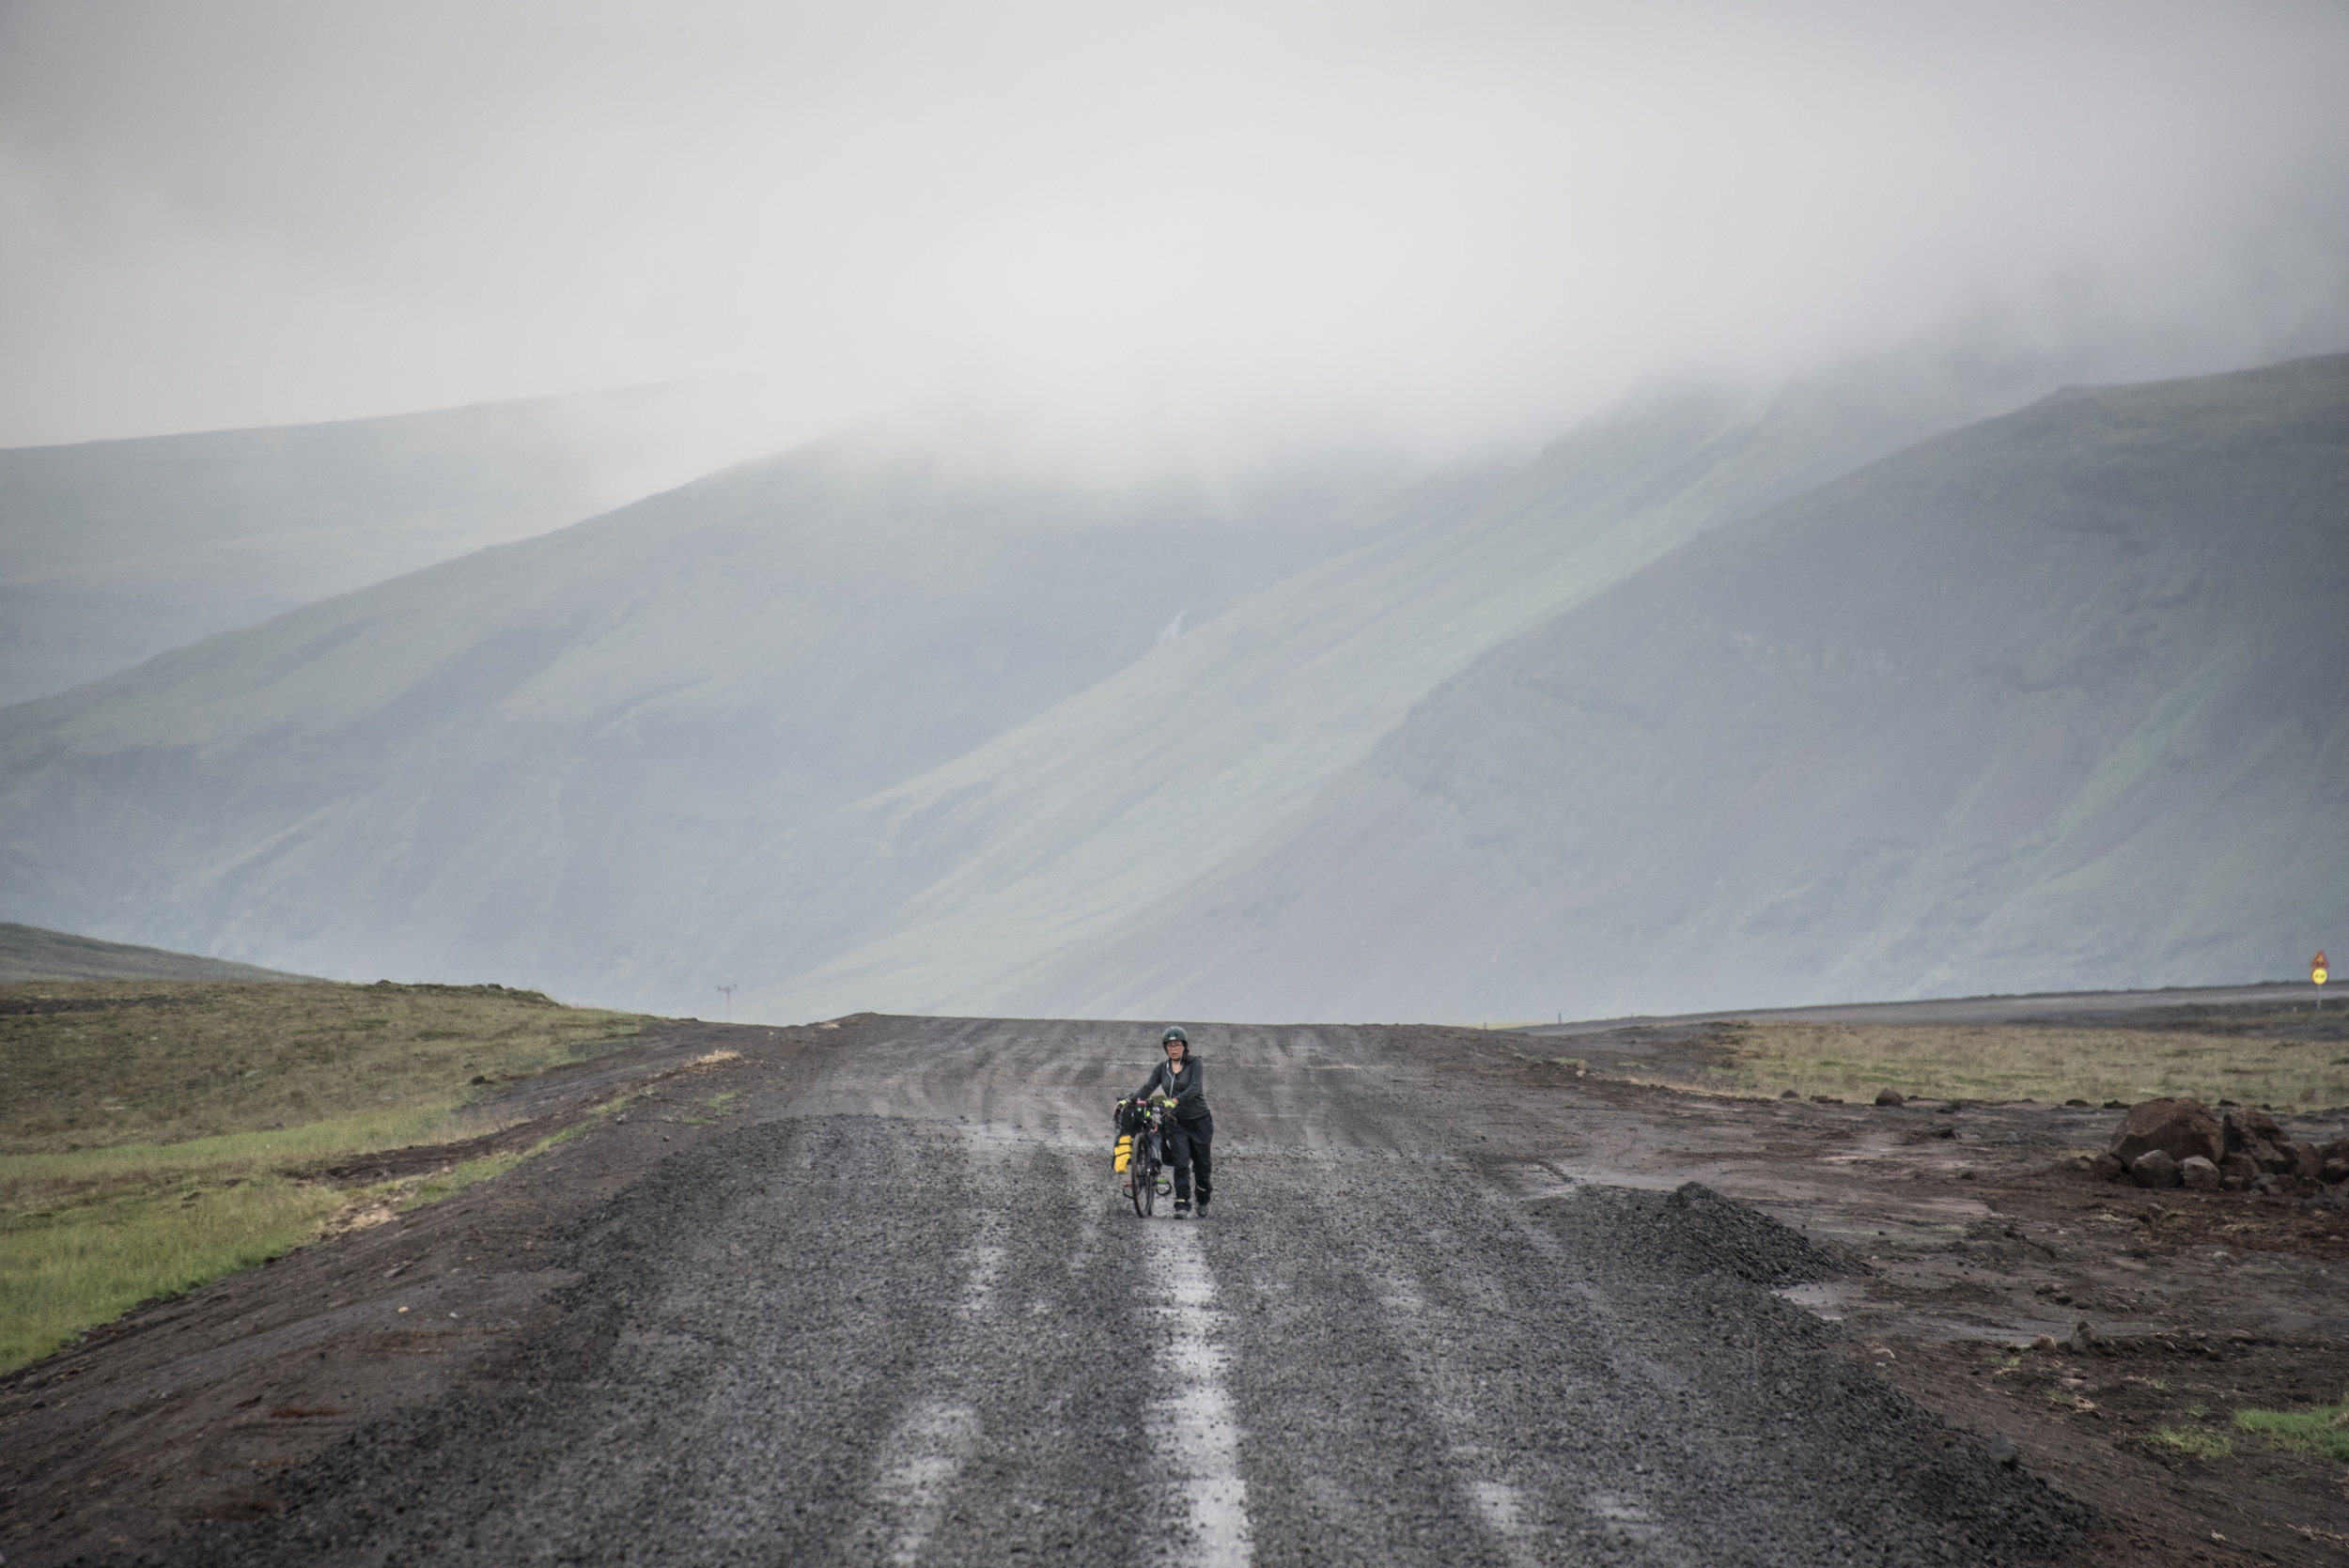 An awful ride (and eventually walk) along a wet, cold, hilly, gravelly road in Iceland that pushed us to our emotional limits.